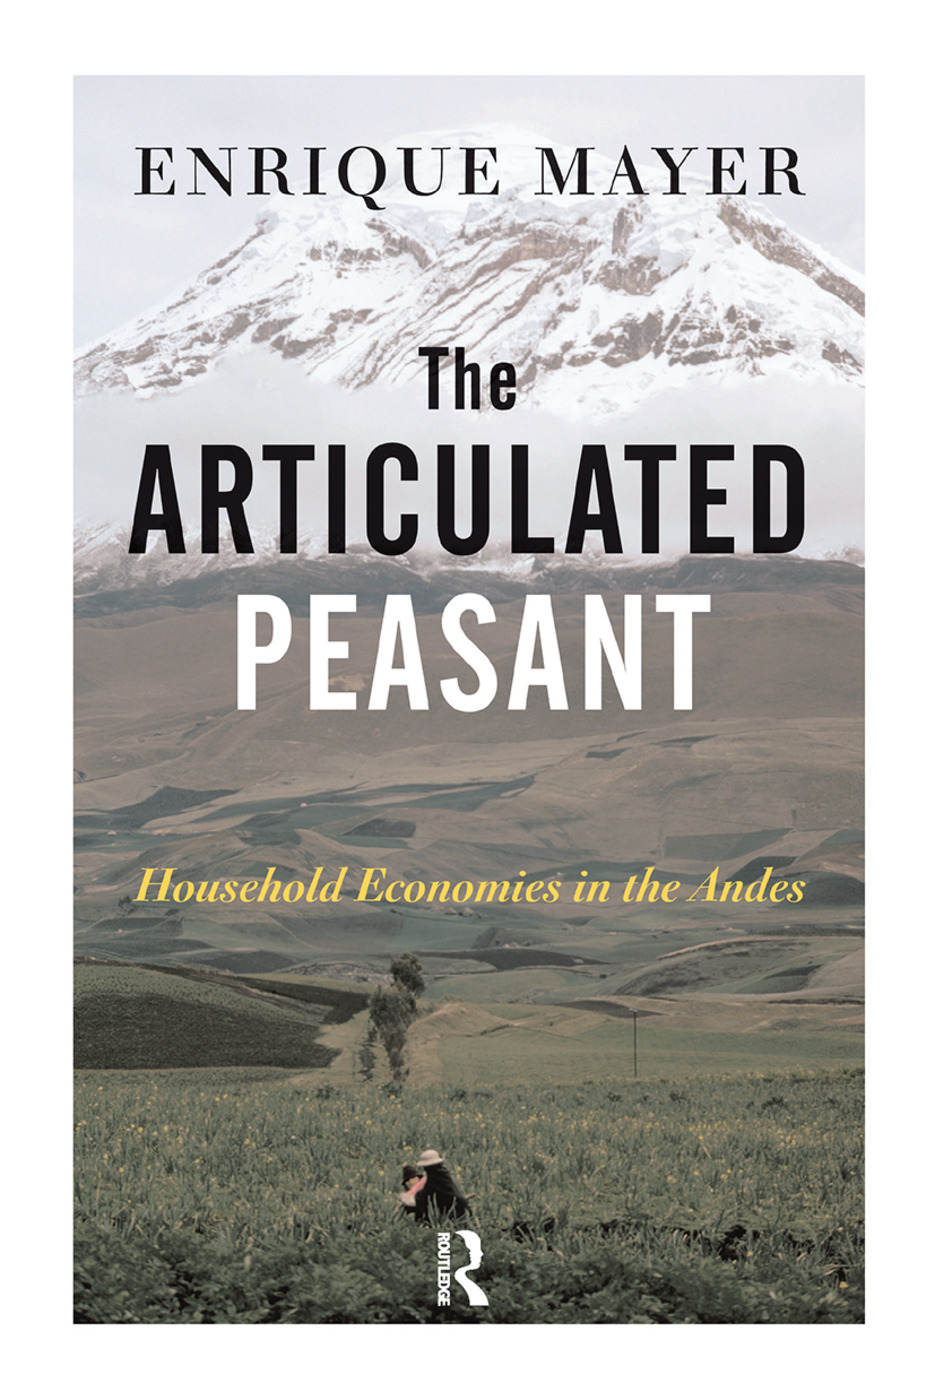 The Articulated Peasant: Household Economies In The Andes book cover